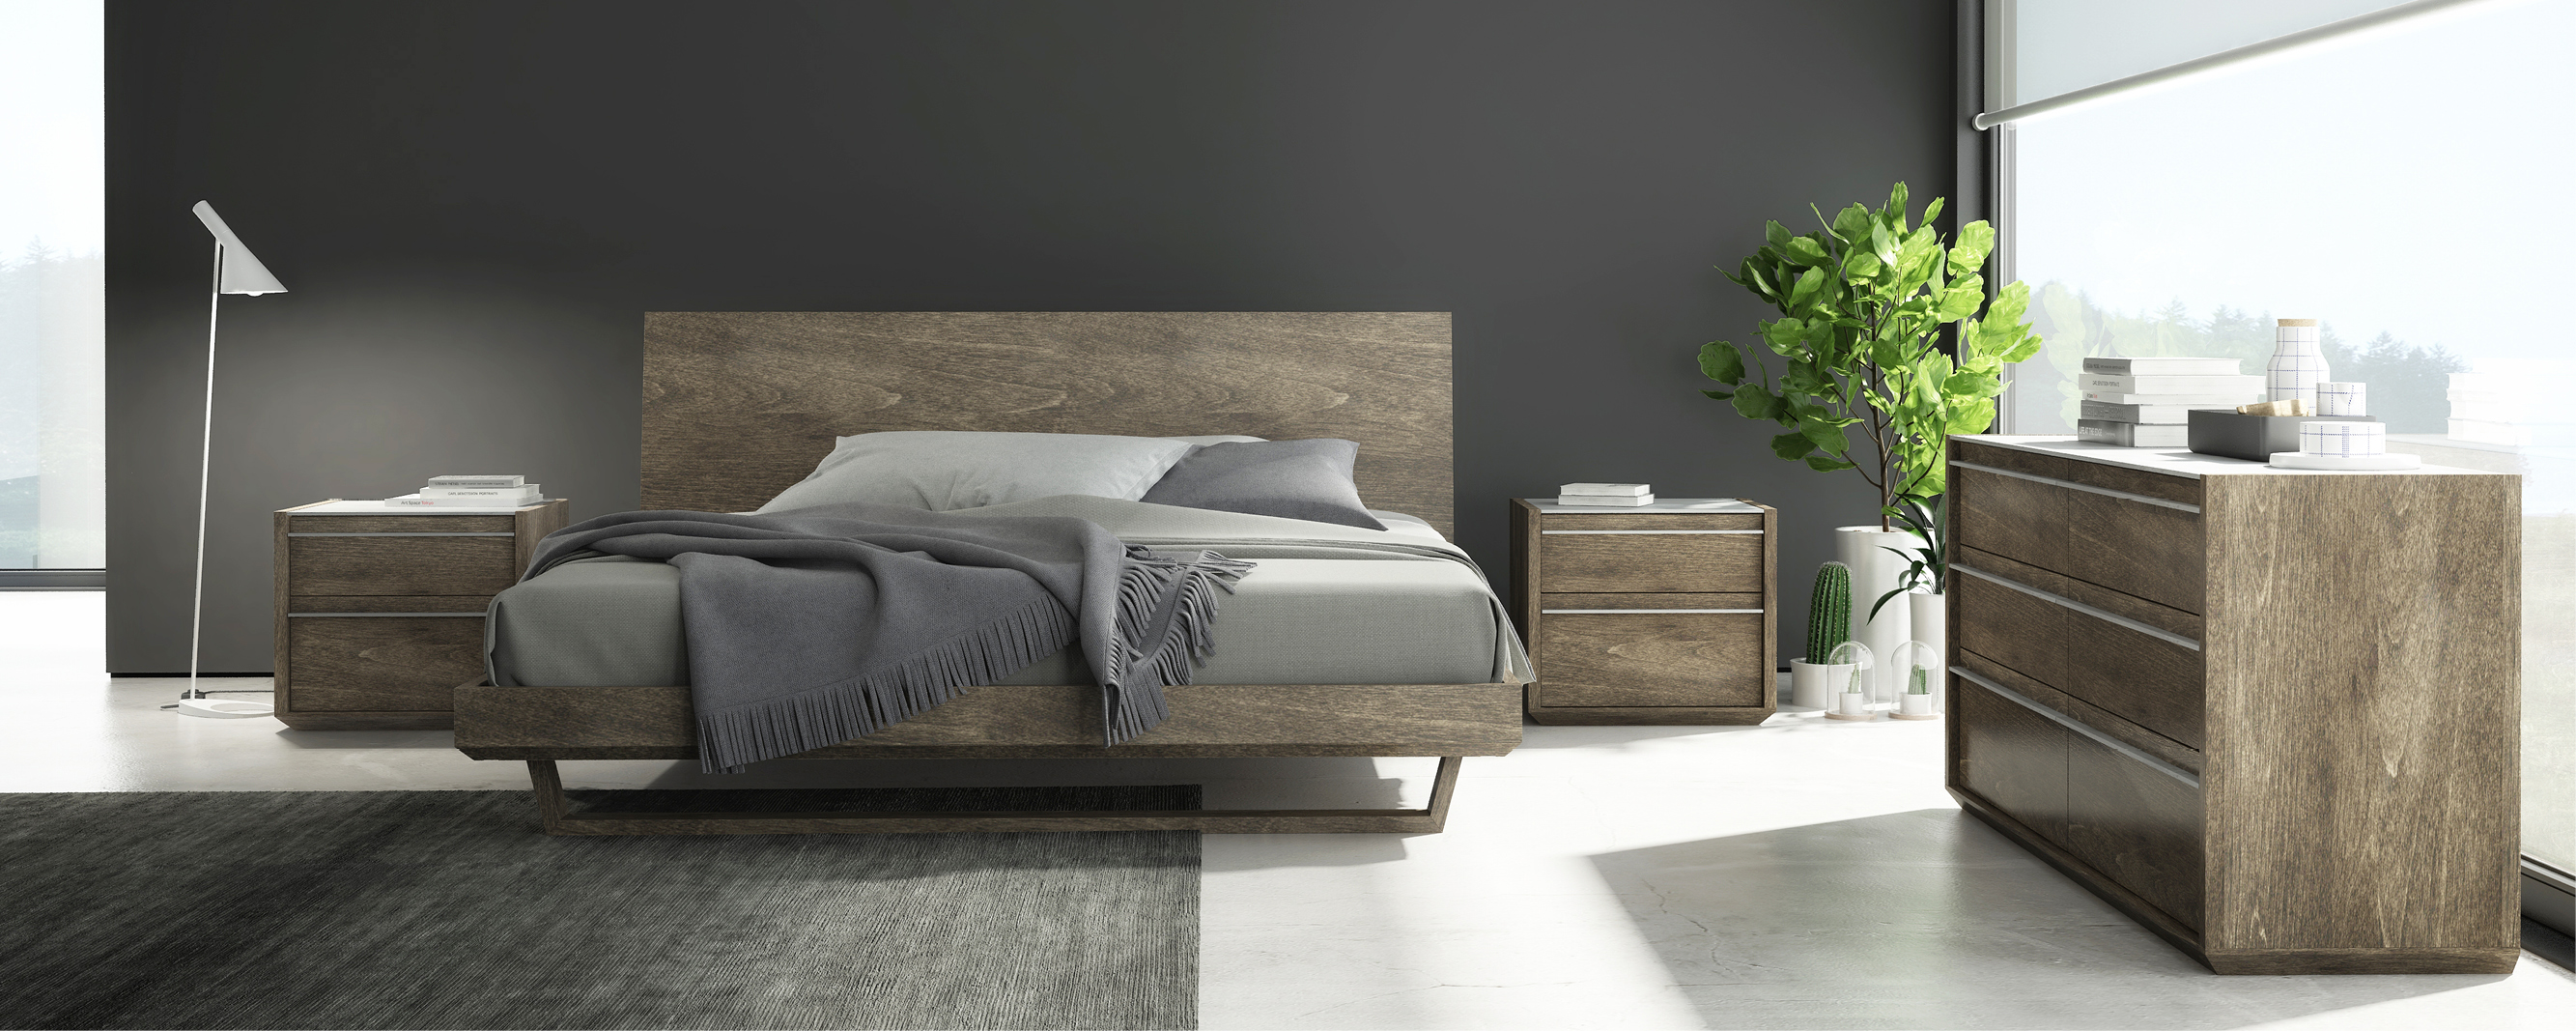 New Bed Store Decoration Ideas